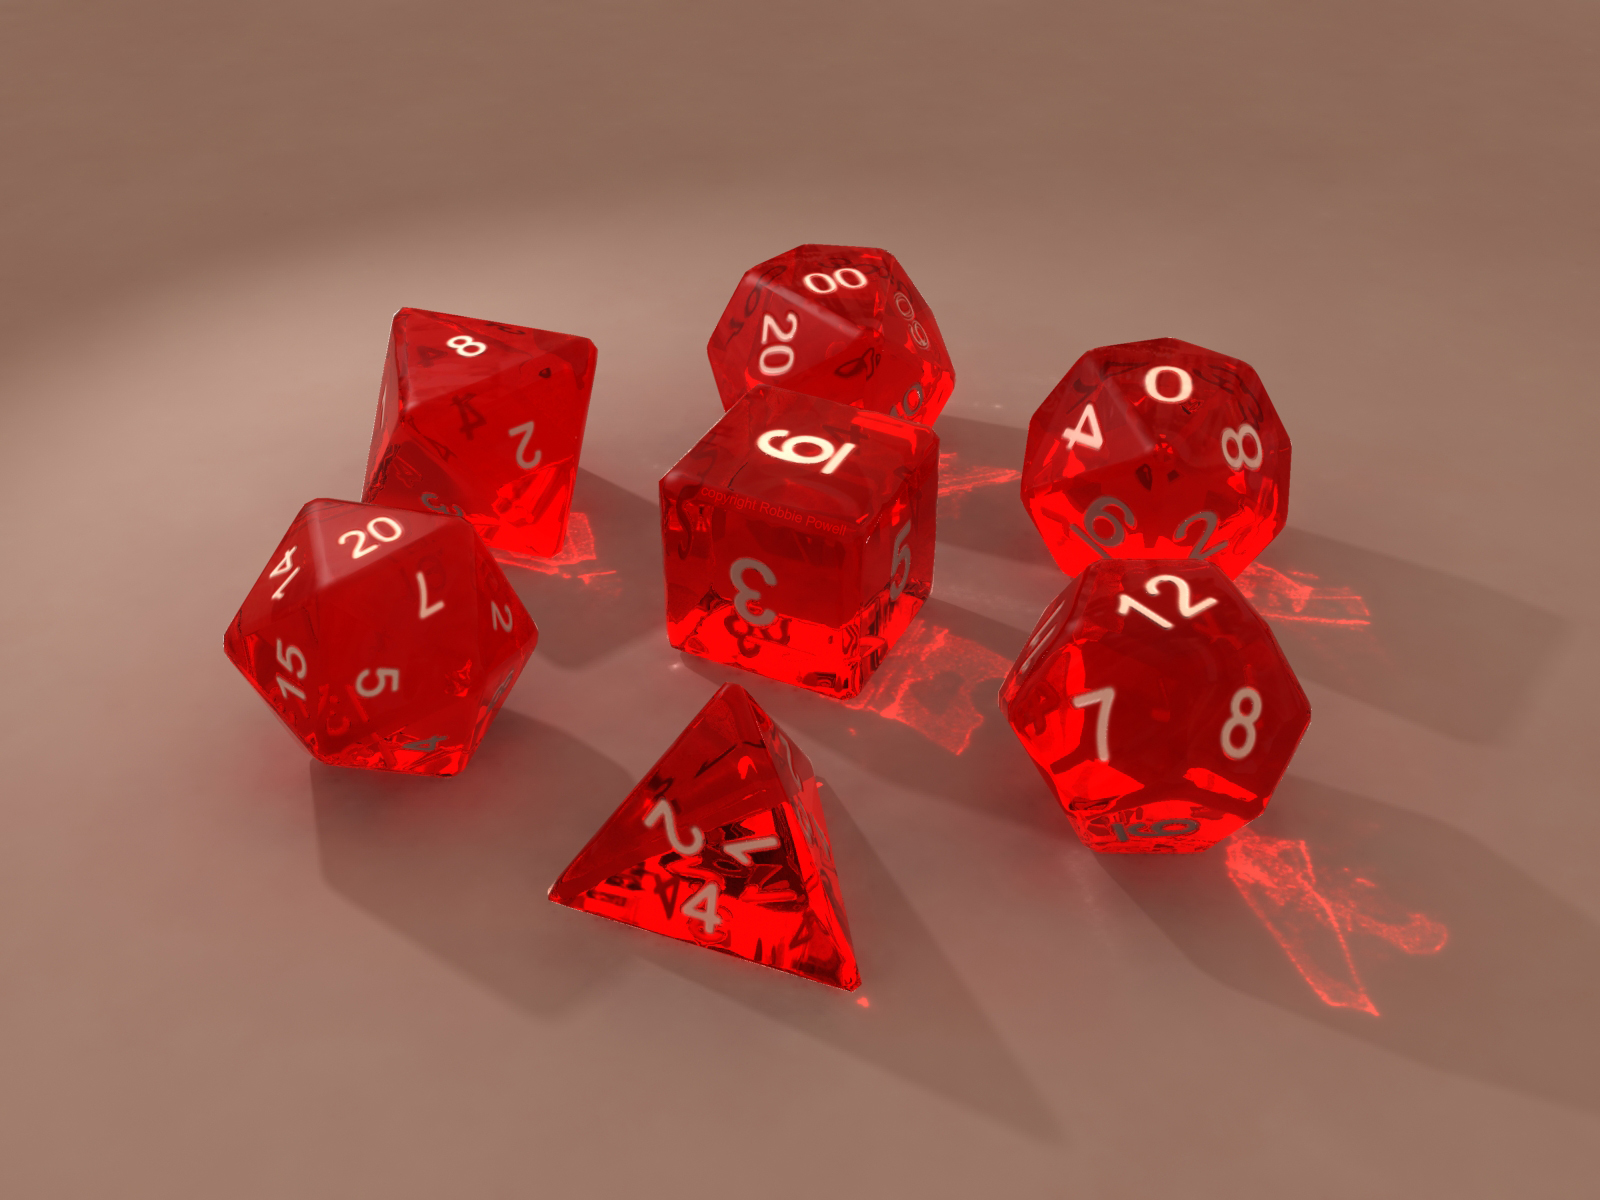 D20 Wallpaper Fresh Dungeons And Dragons D20 Lomo Hd Wallpaper Hot